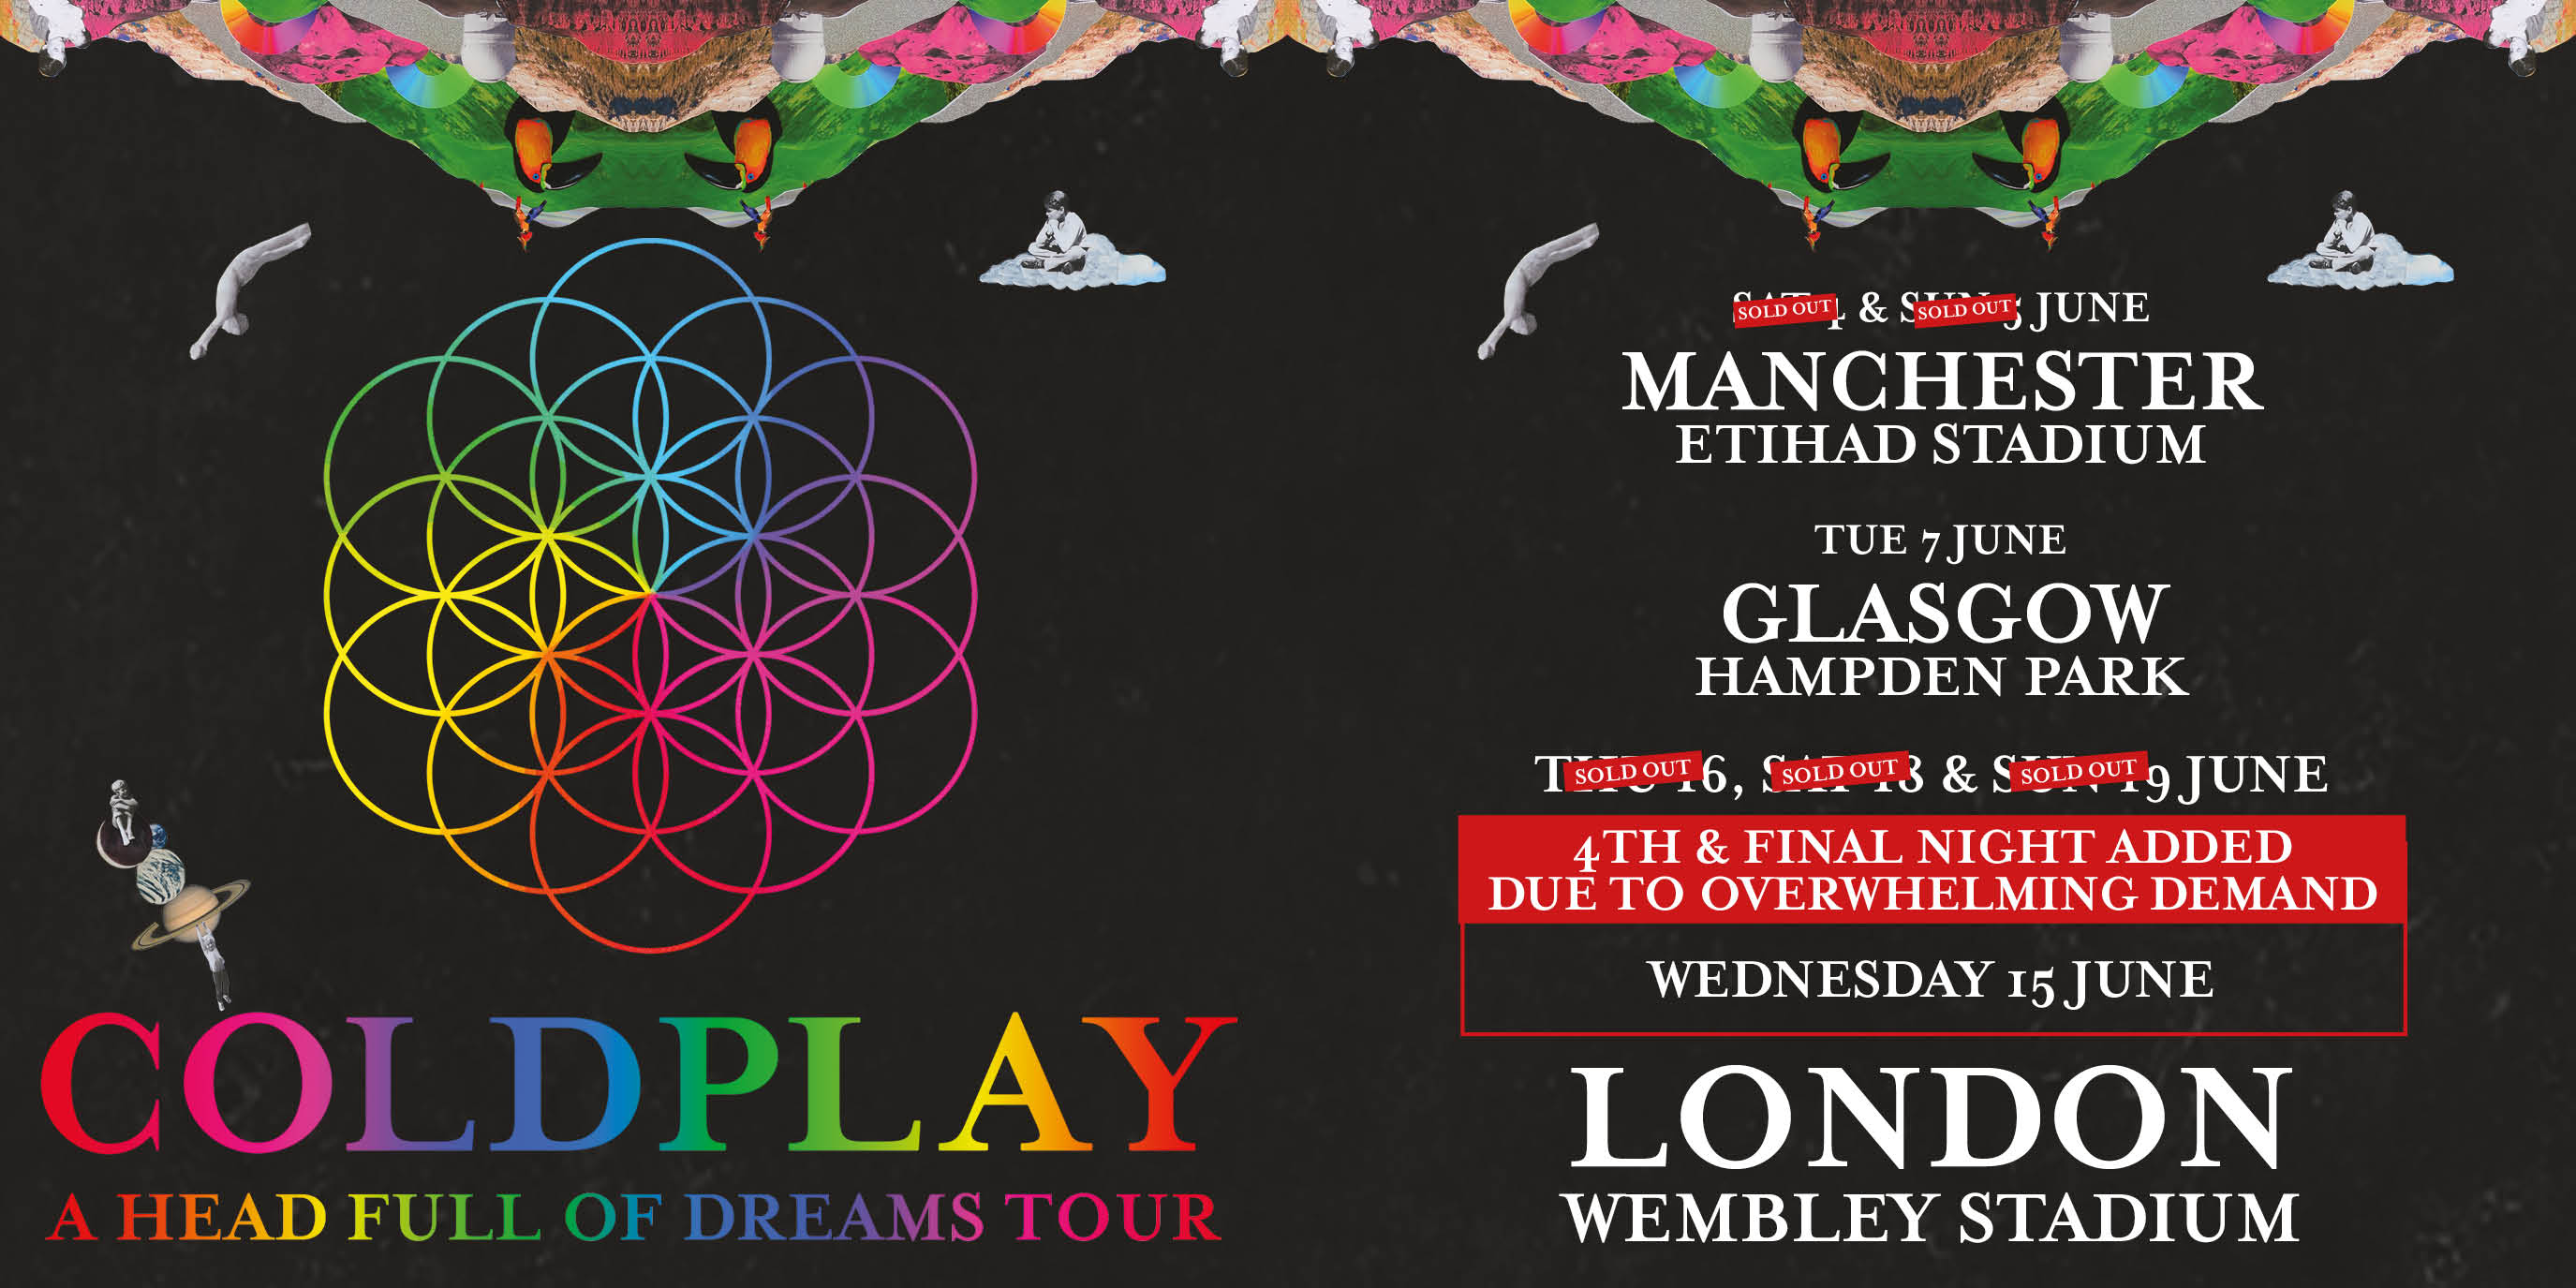 Starting Tomorrow Coldplay Live Performance At Wembley Stadium London